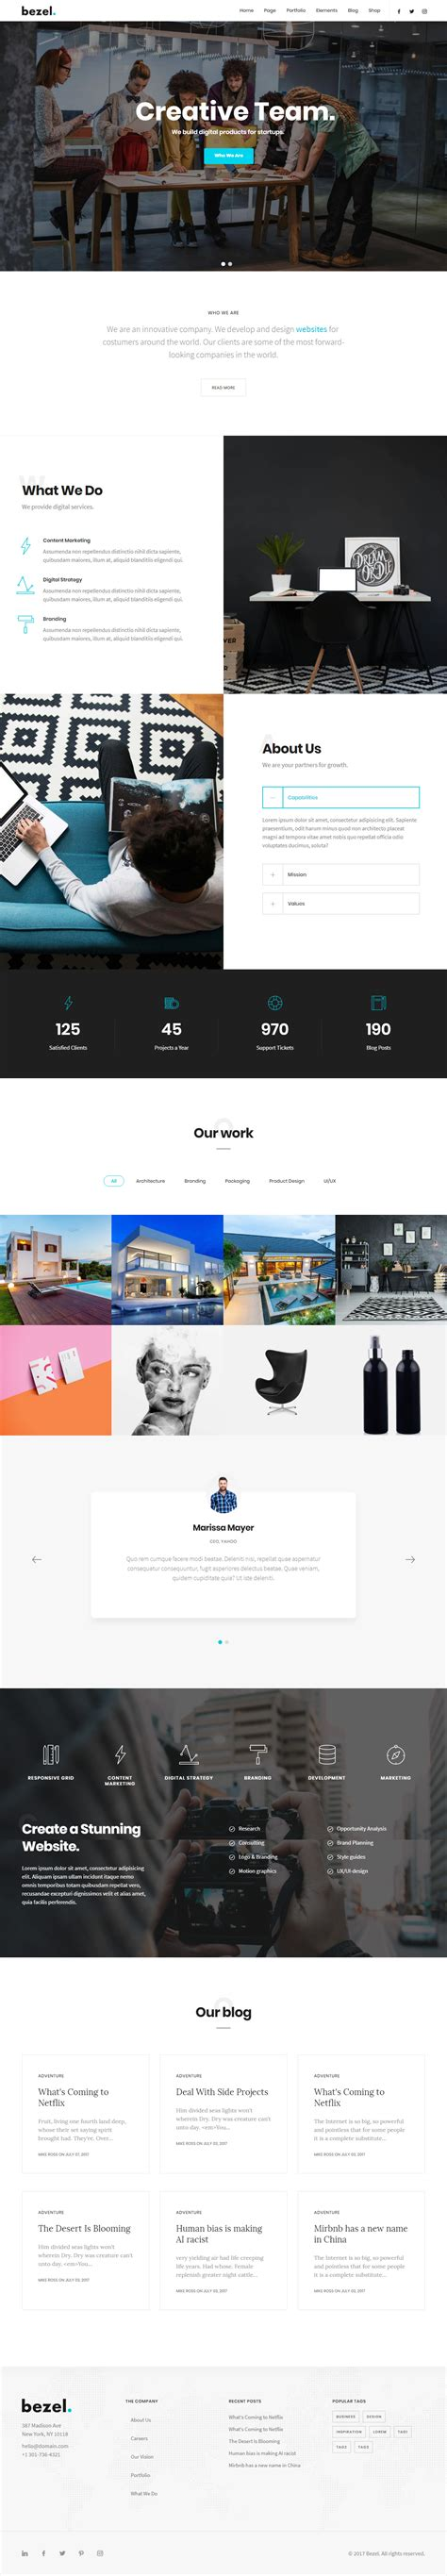 40 Best Drupal 8 Themes And Templates 2017 Responsive Miracle Drupal 8 Page Template For Content Type